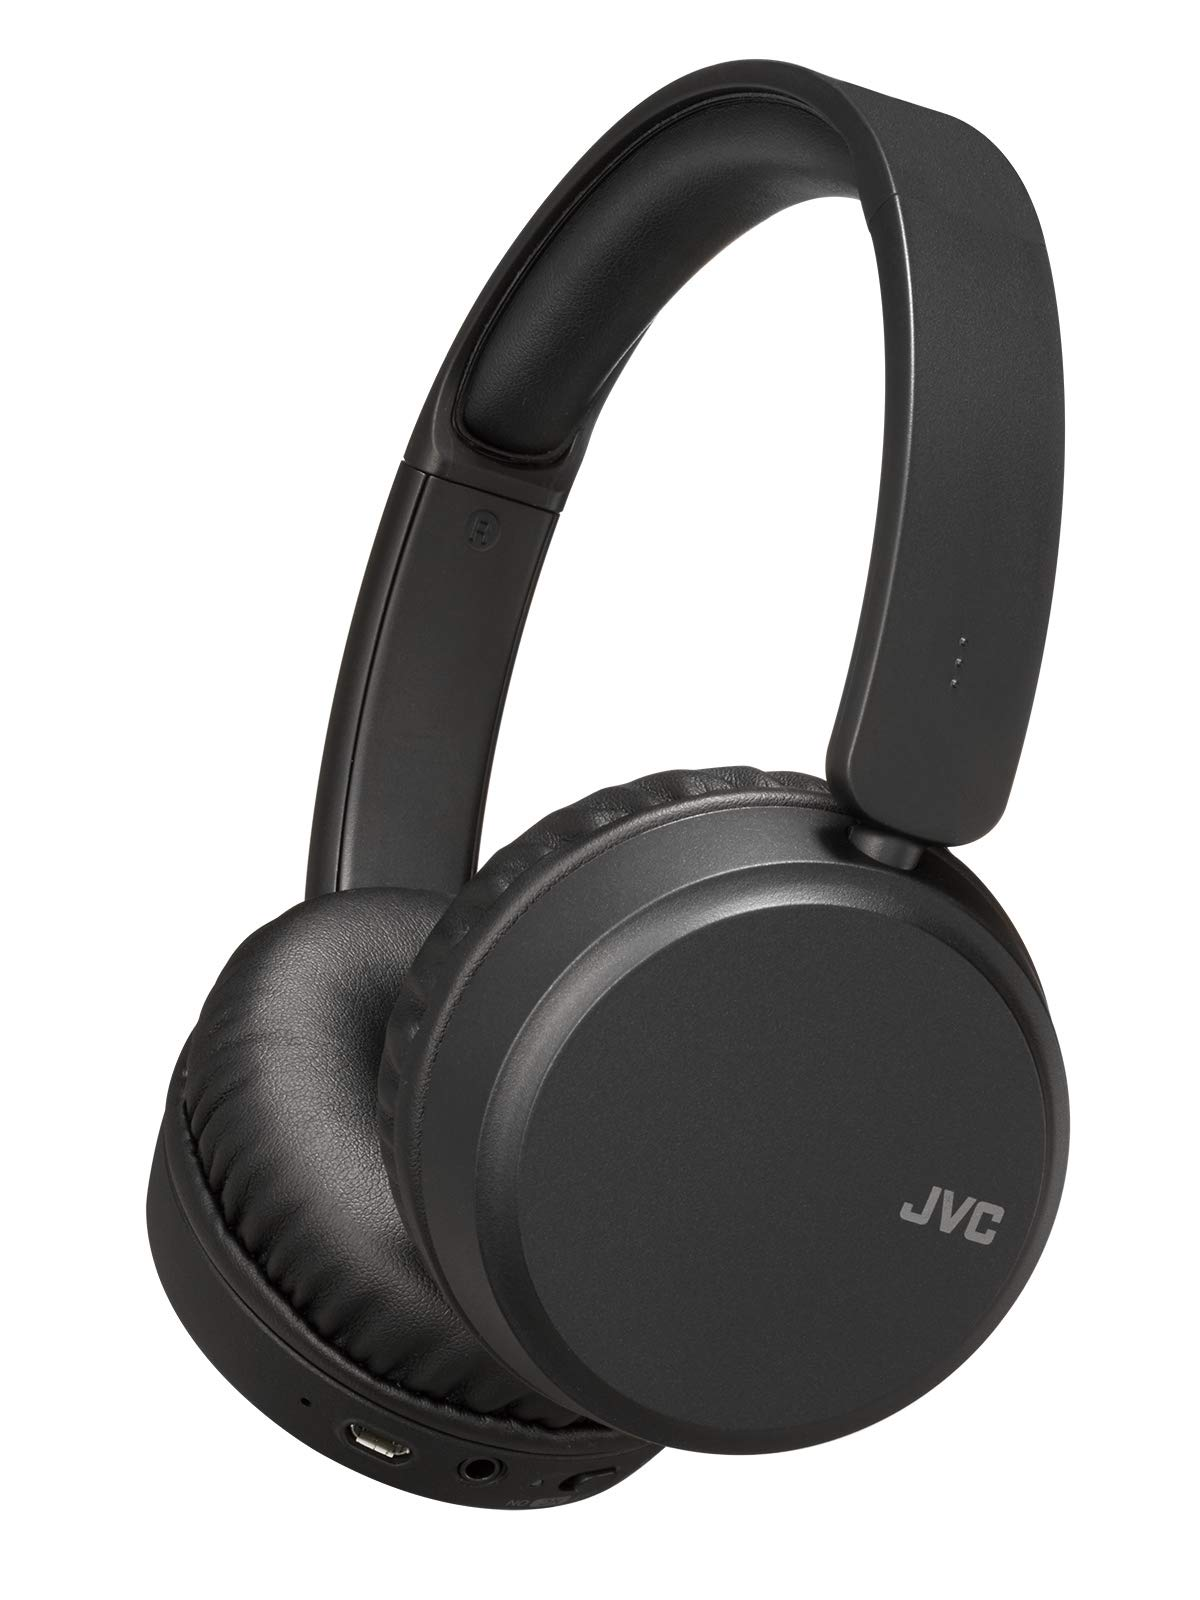 Auriculares JVC Cancelacion de Ruido Inalambrico Headpones Bluetooth 4.1 Bass Boost Function Voice Assistant Compatible